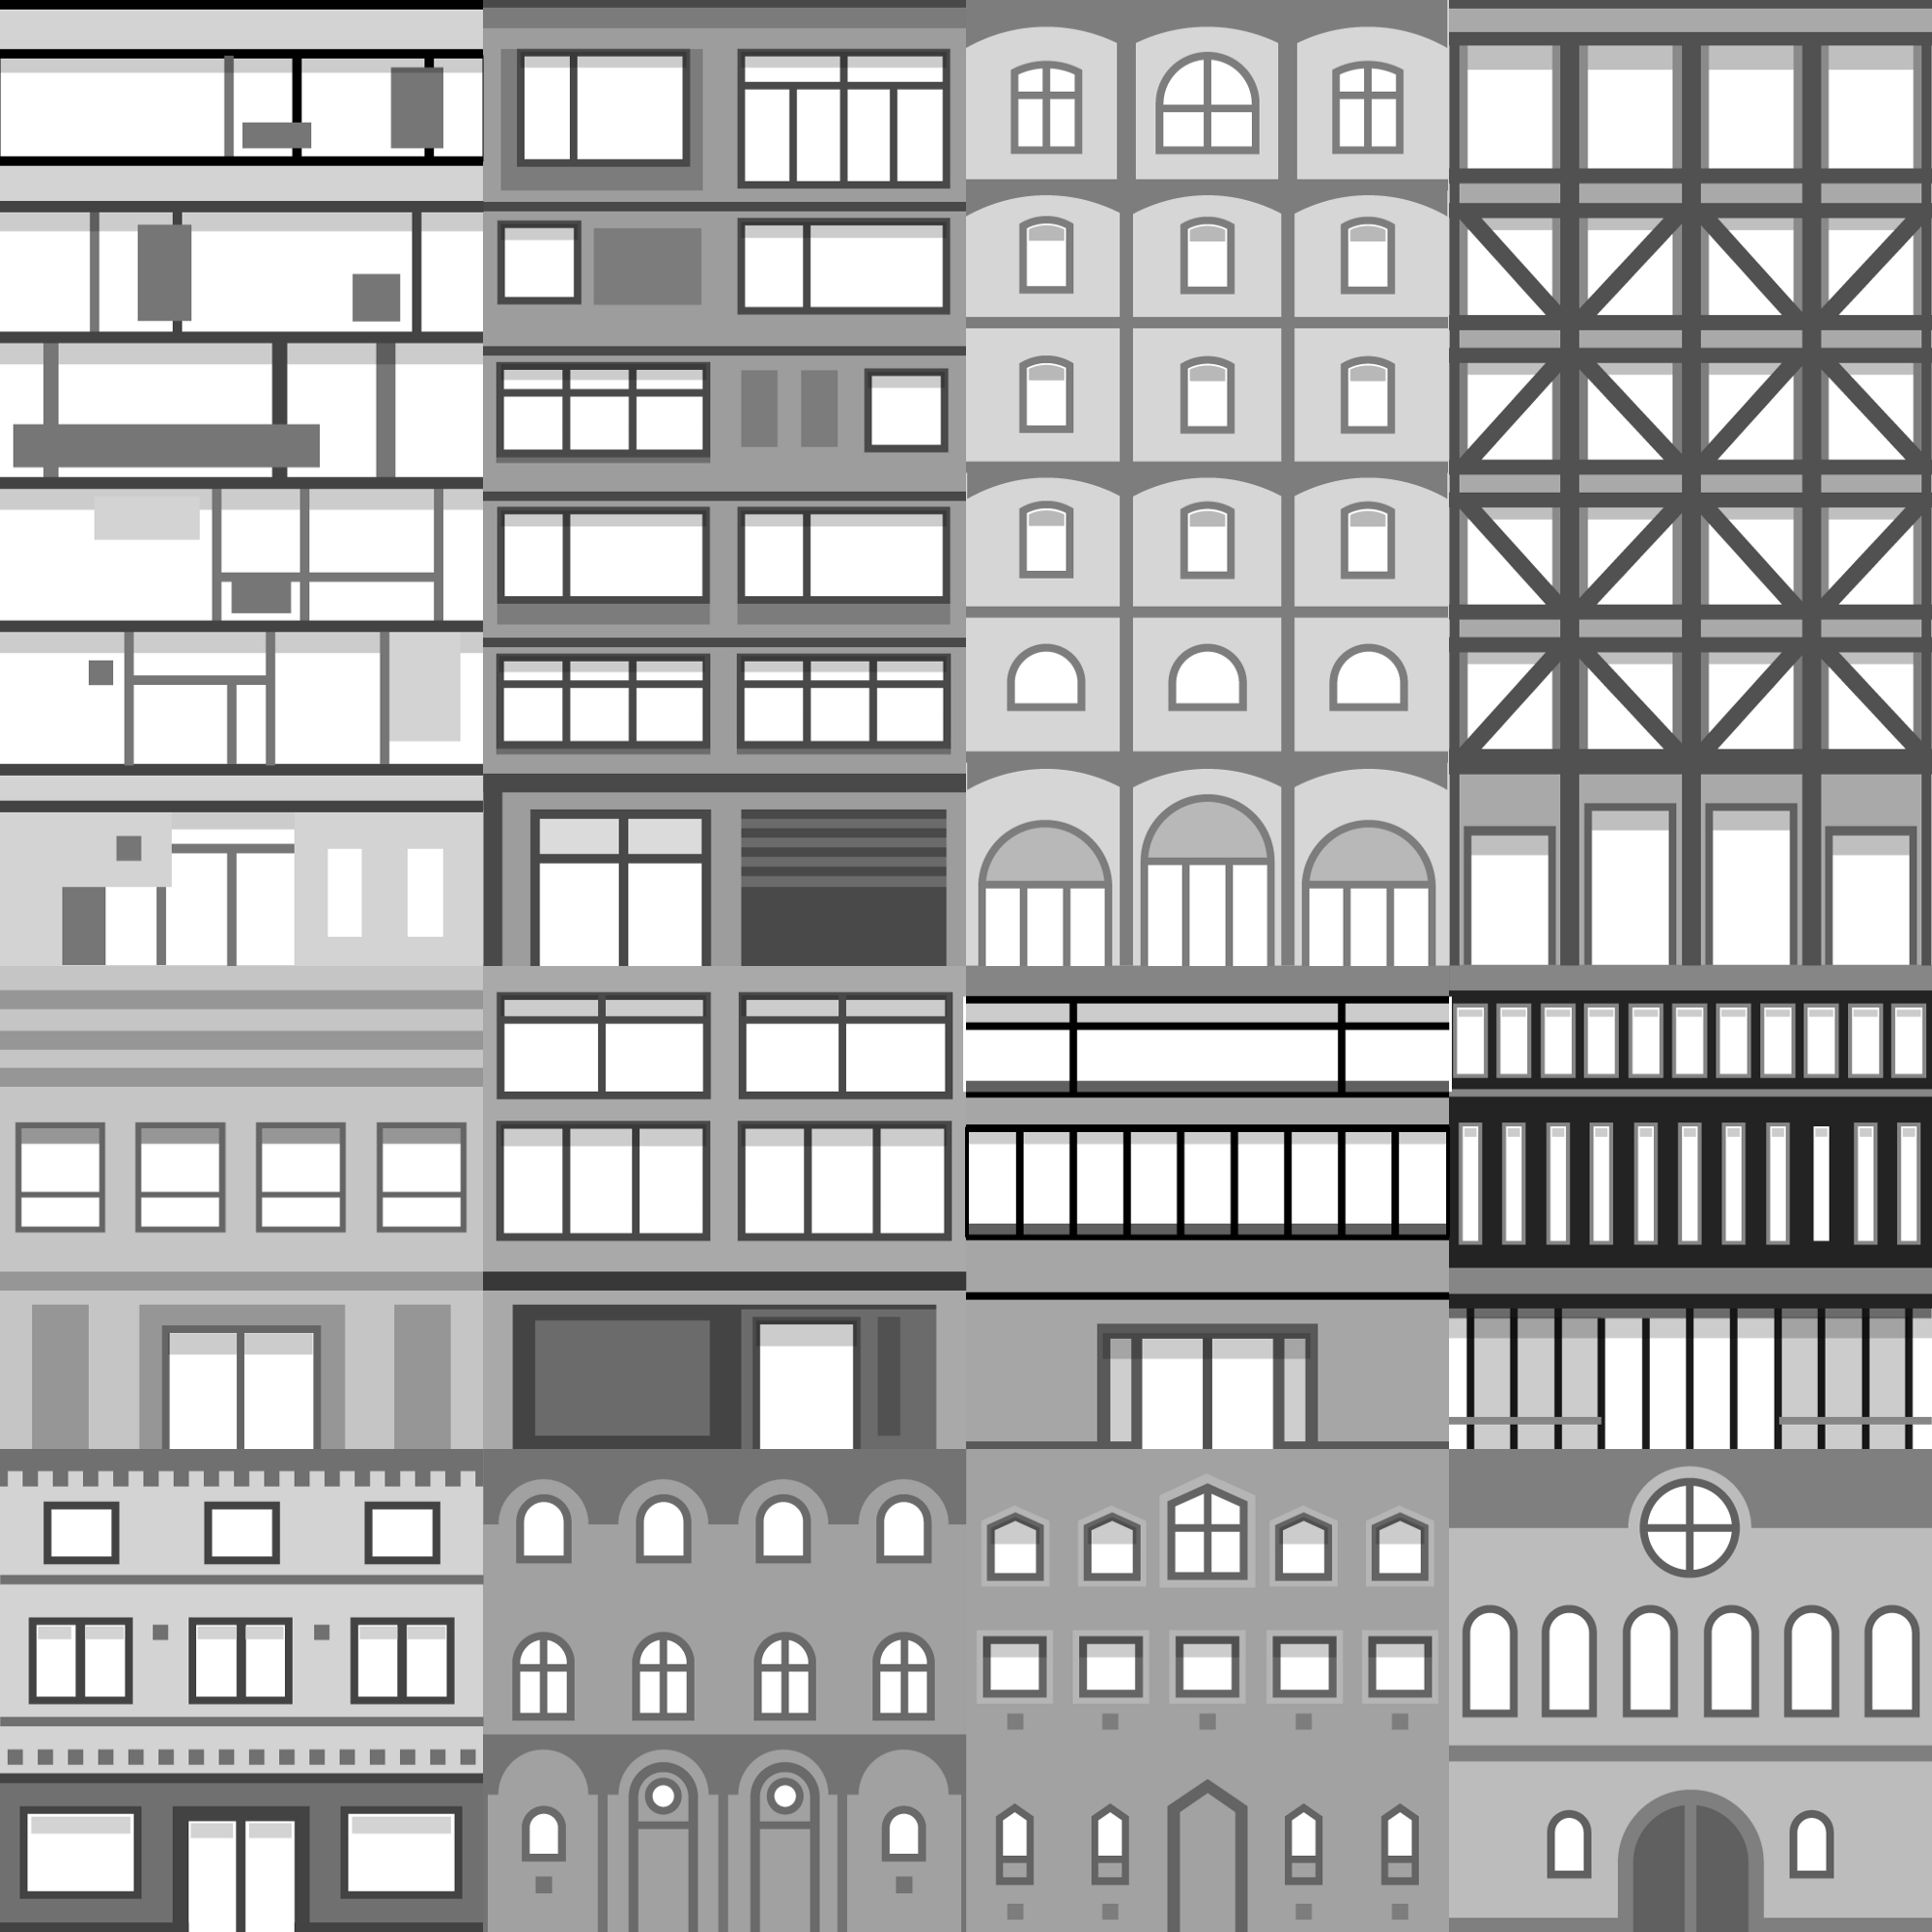 Style your city in Unity - Points of interest